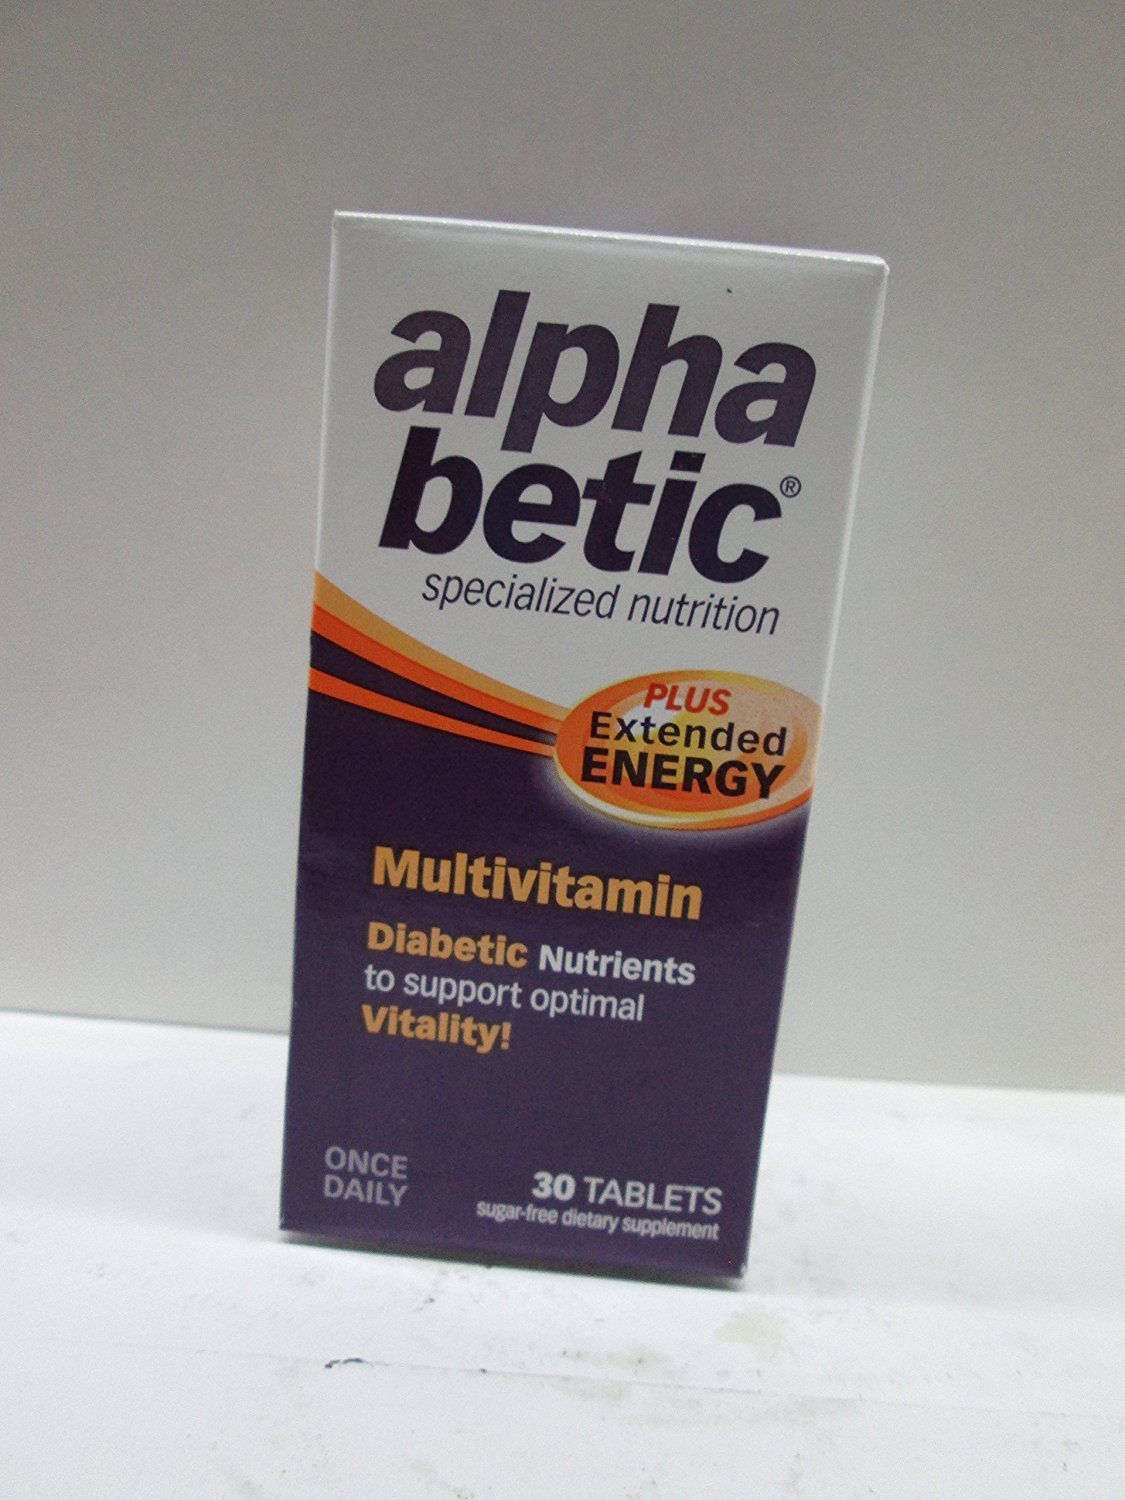 alpha betic Multi-Vitamin Caplets 30 Caplets Pack of 6